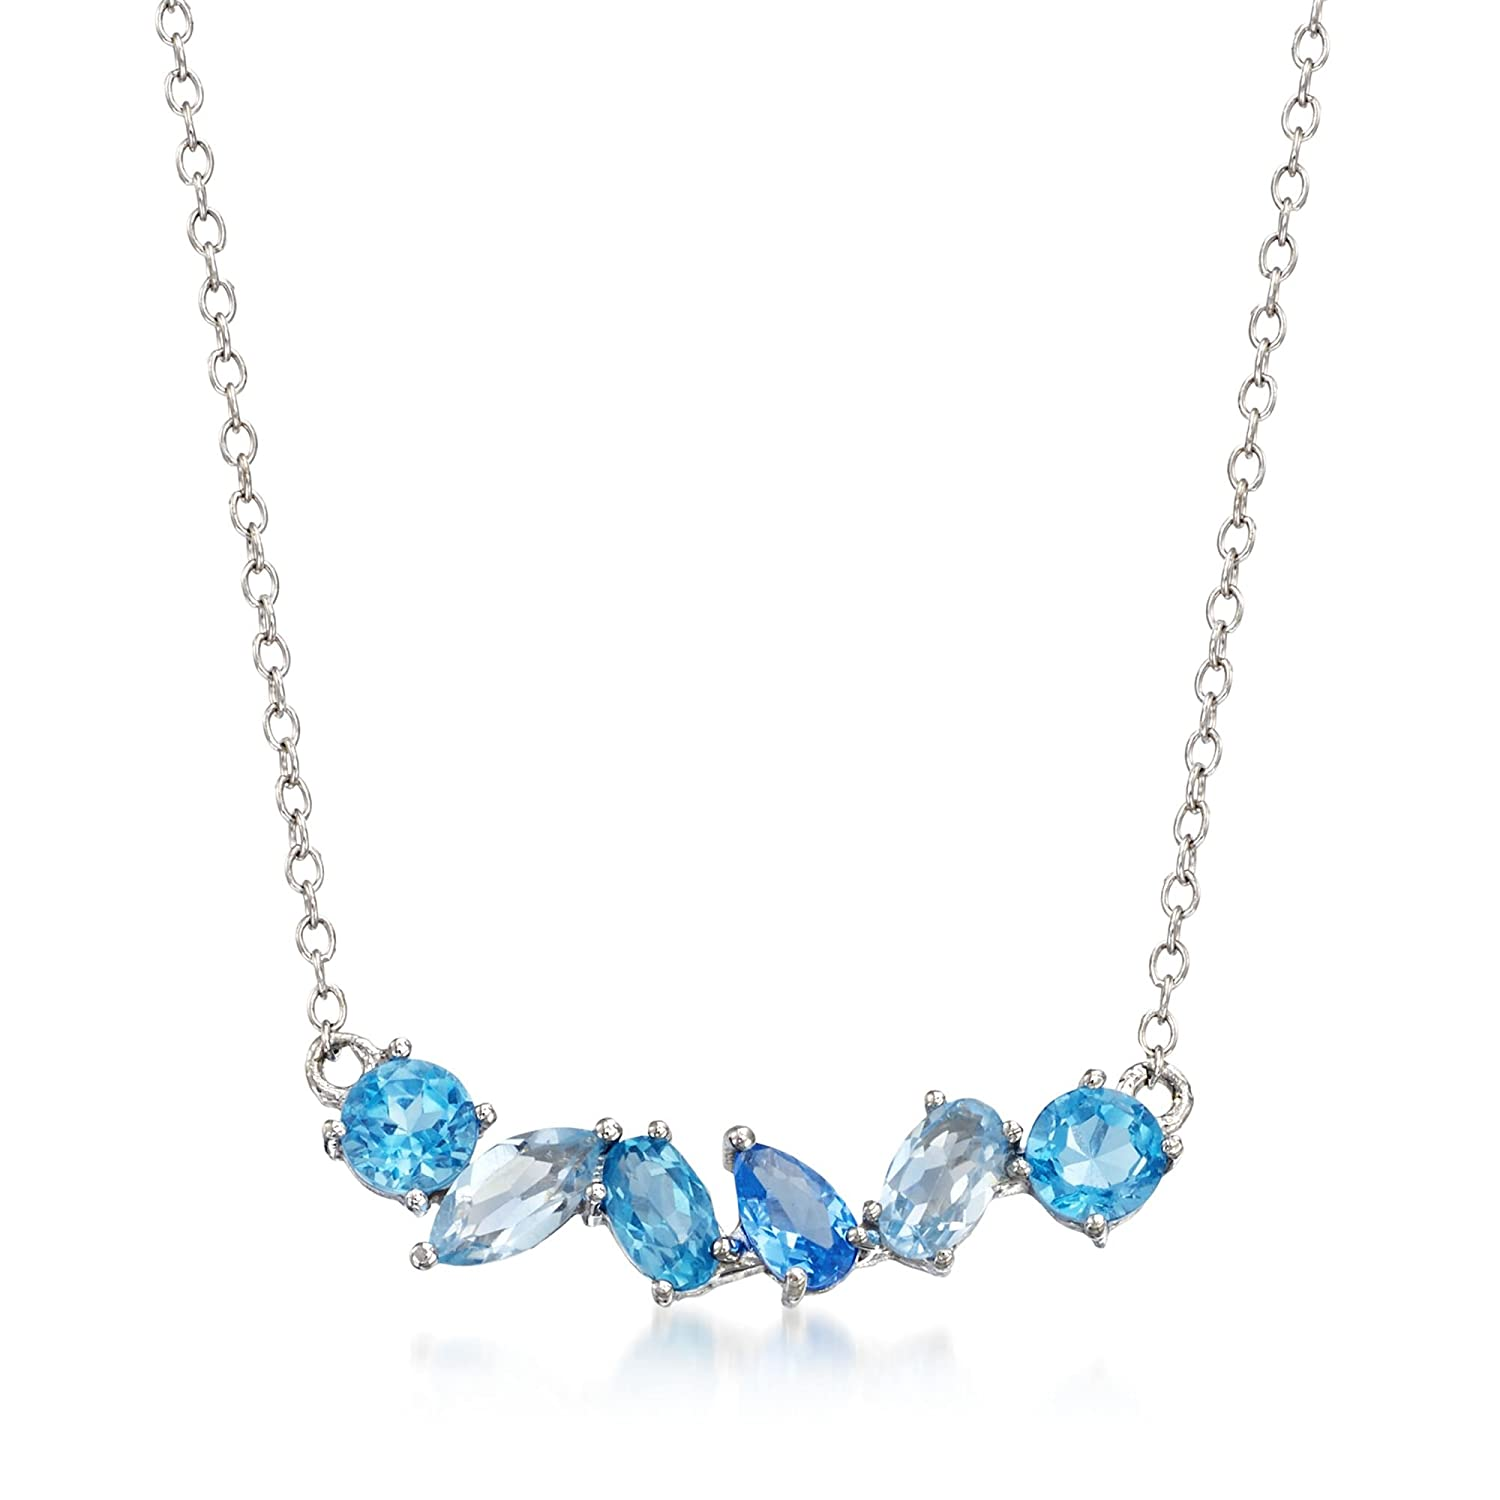 3f30fa33e t.w. Tonal Blue Topaz and .10 Carat Blue Synthetic Spinel Necklace in Sterling  Silver